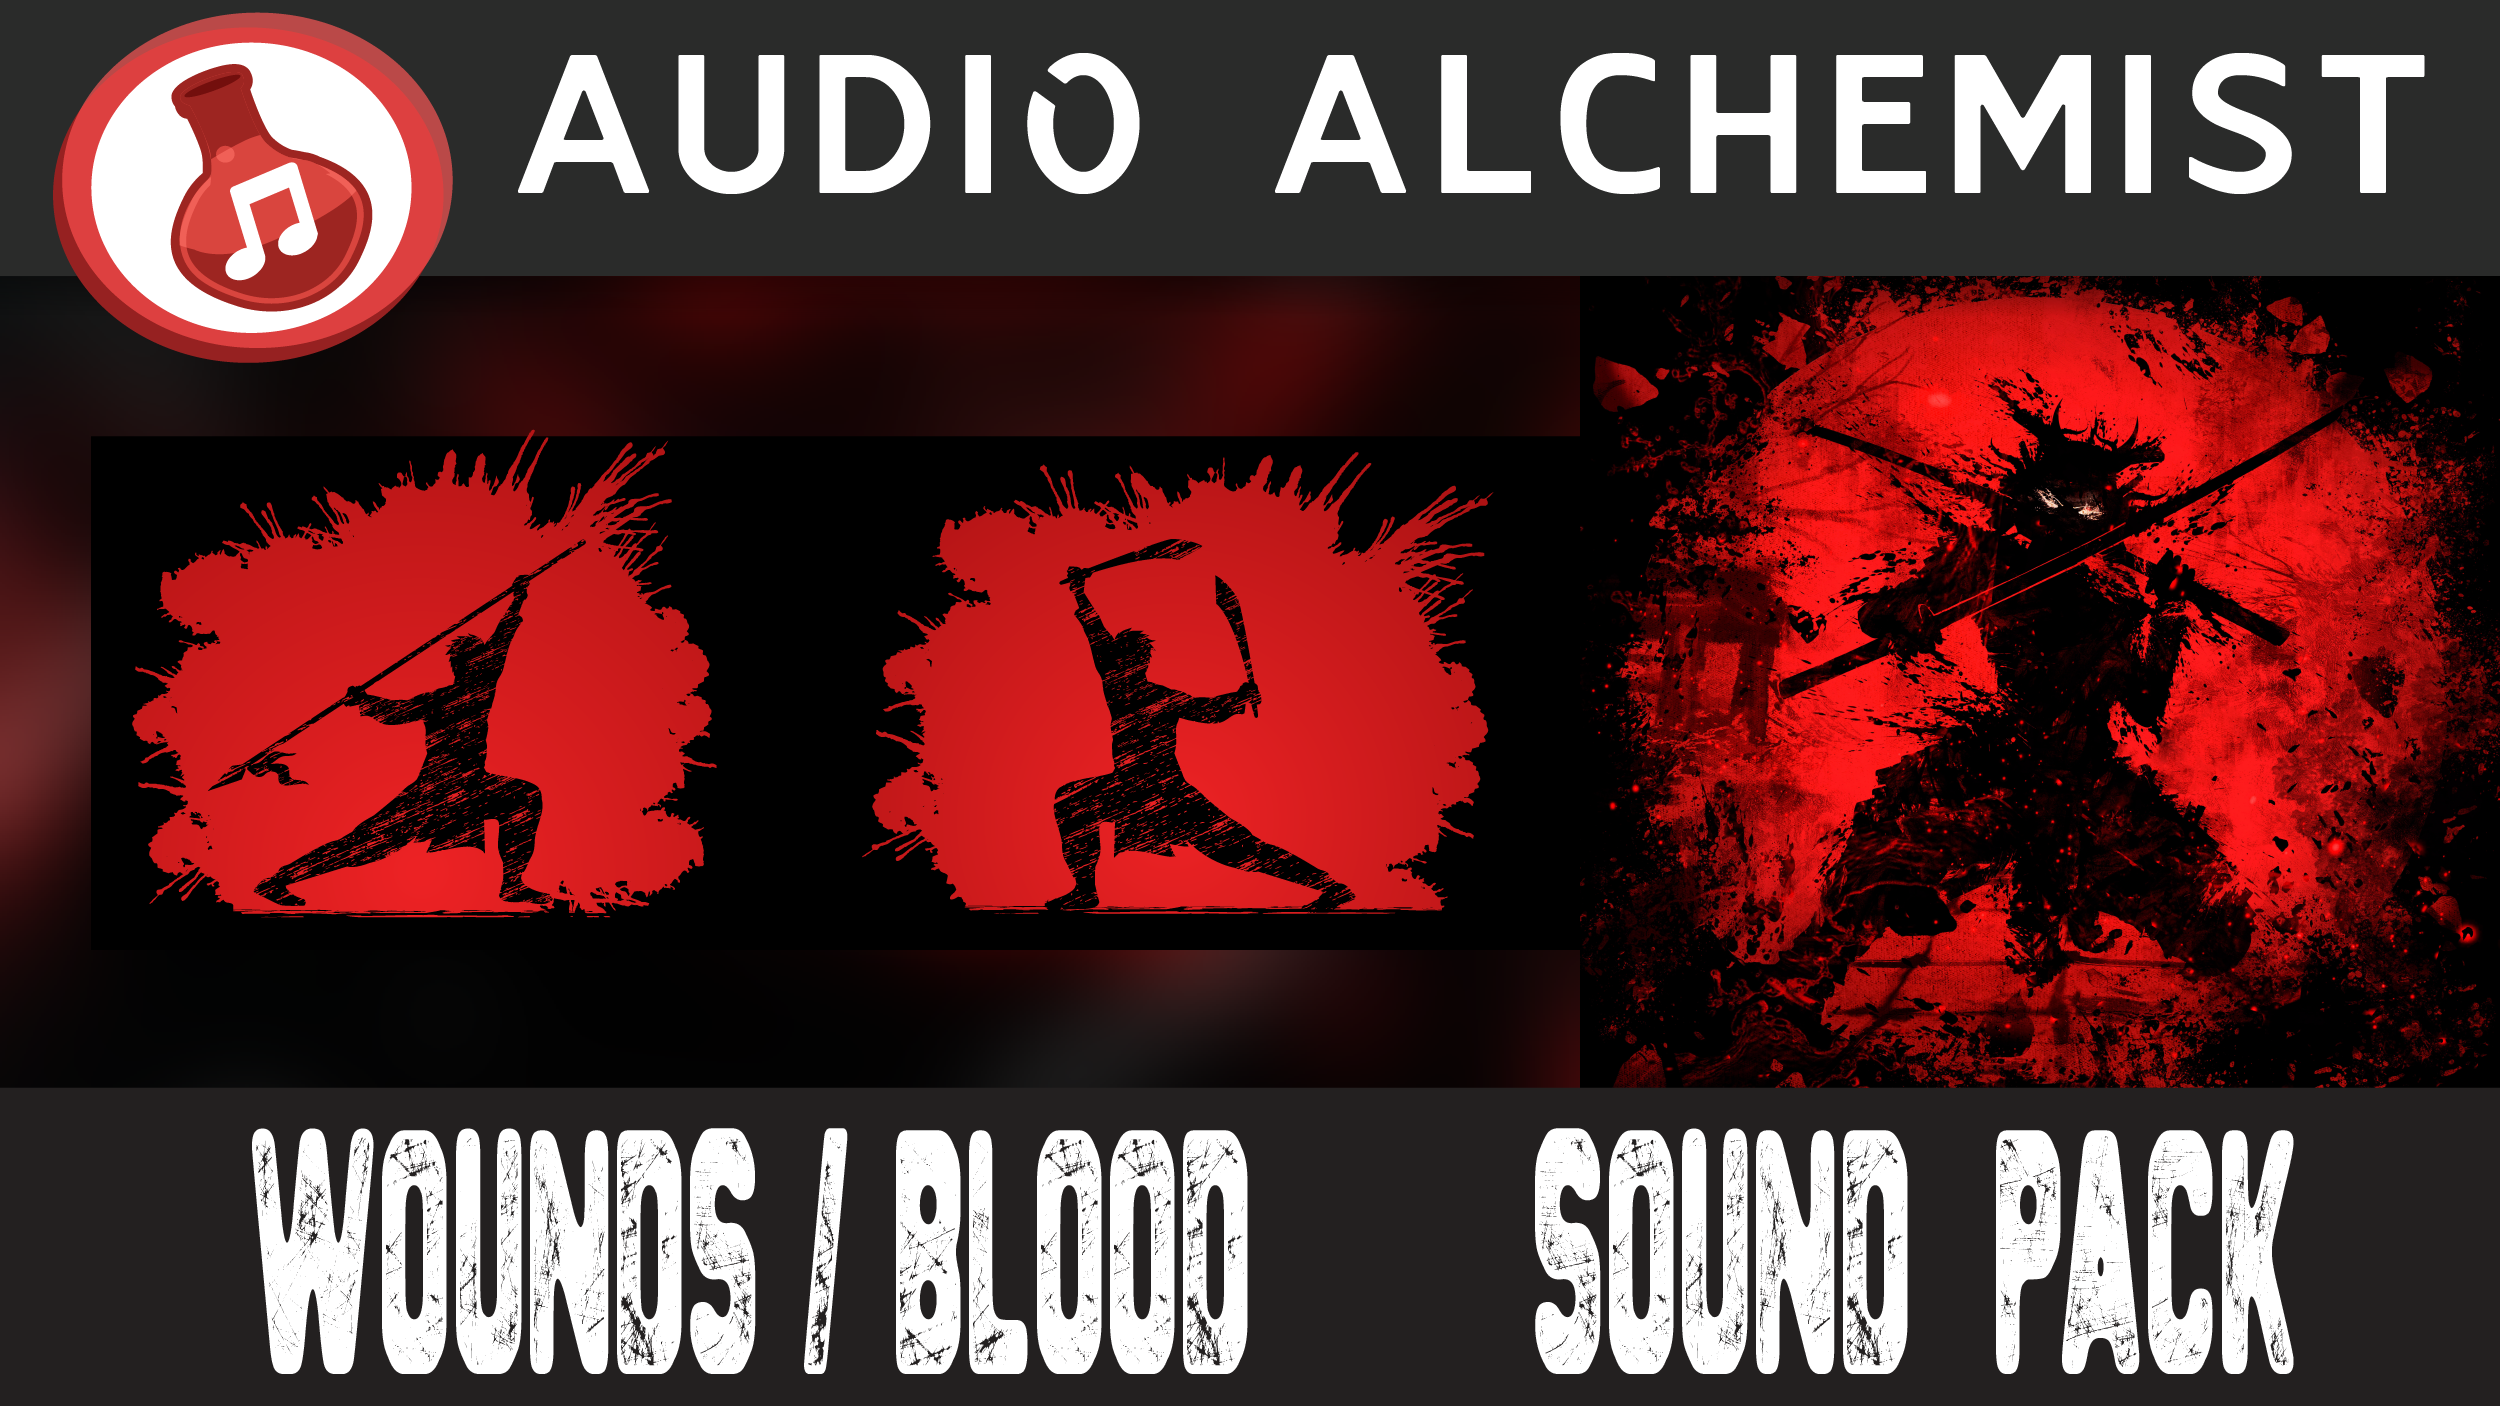 Wounds & Spells Sound Pack